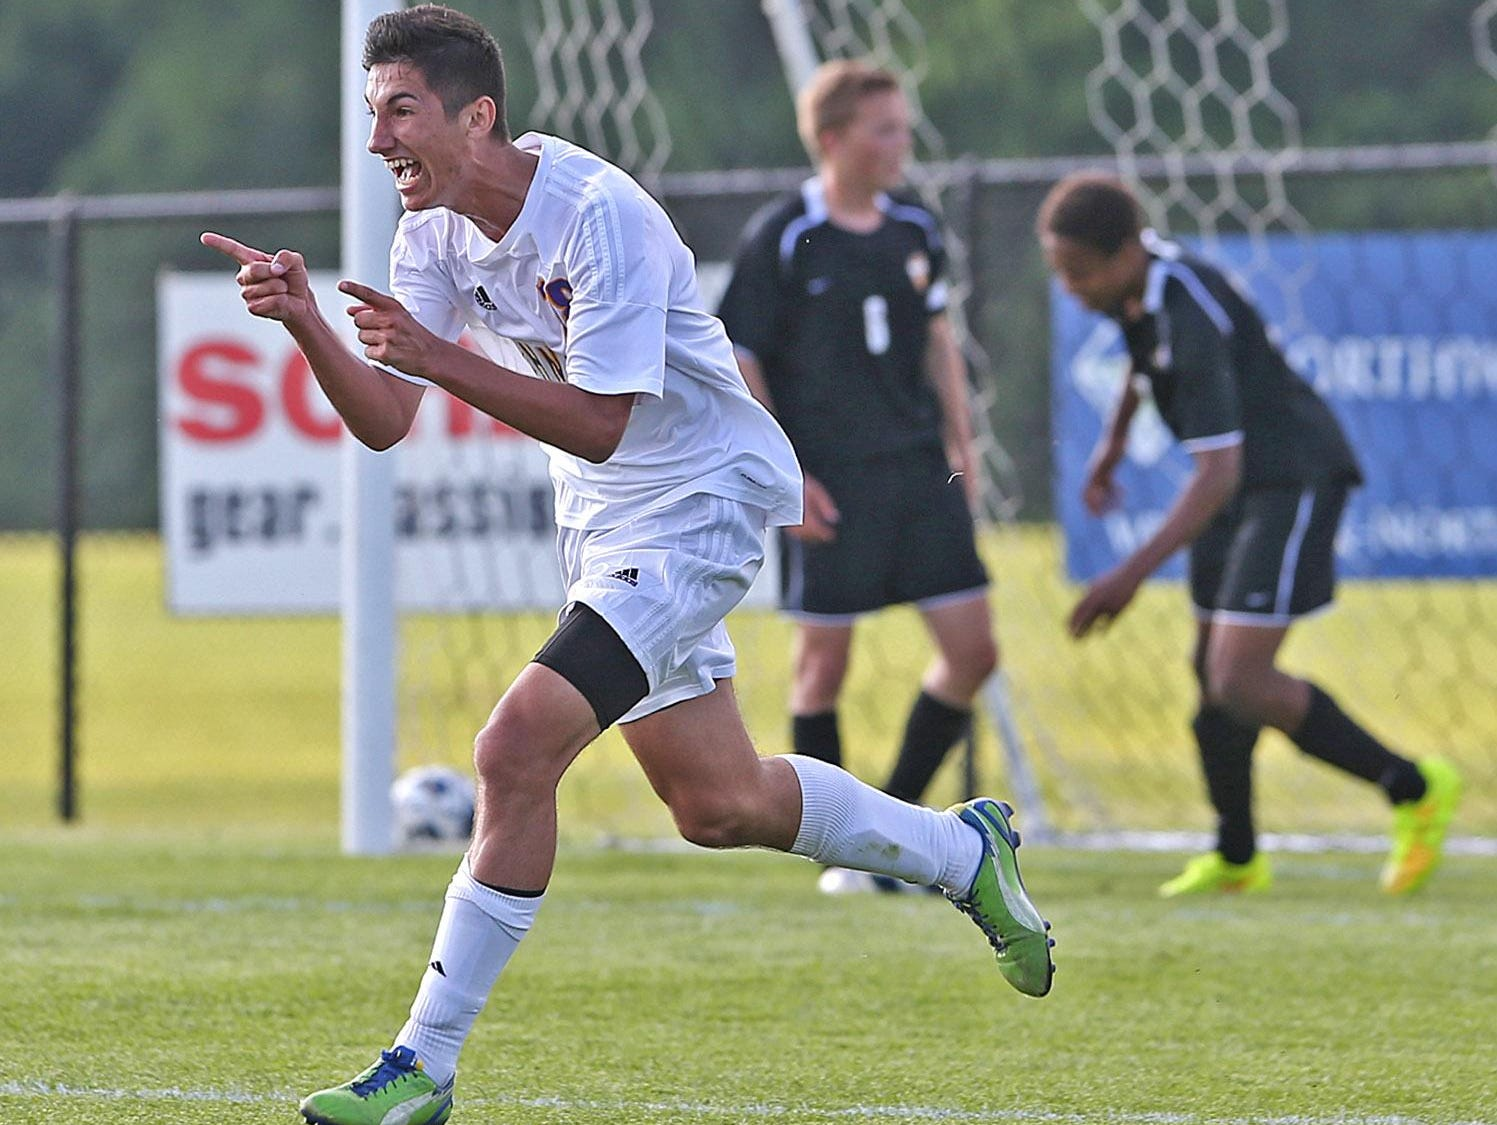 Elvir Ibisevic scored 20 goals and led Johnston to a Class 3A runner-up finish as a sophomore in 2014. He signed to play at Omaha on Wednesday.